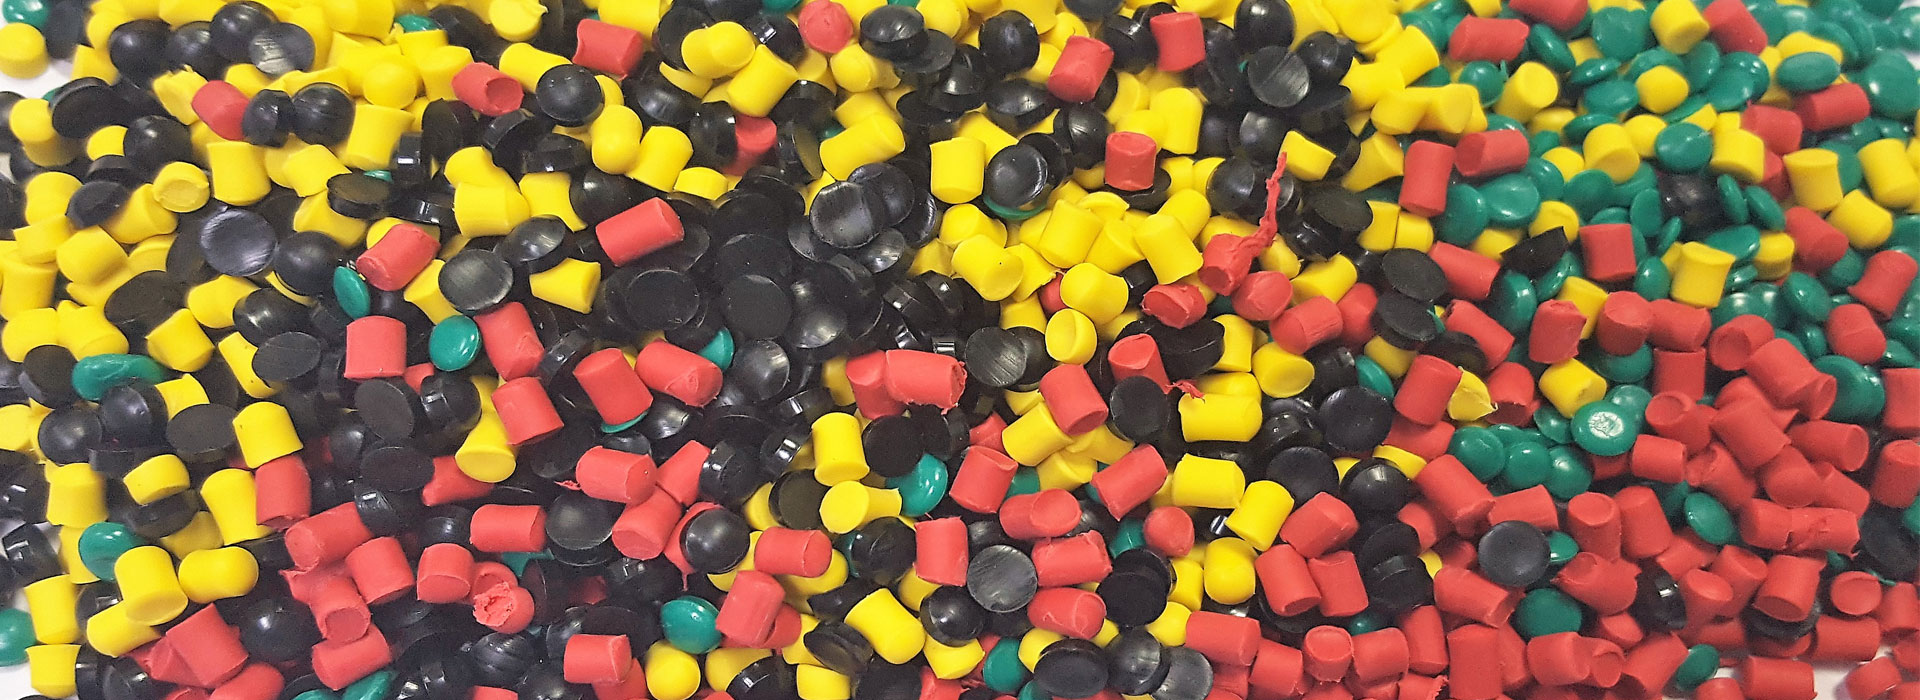 LEADING PRODUCER OF PVC COMPOUNDS